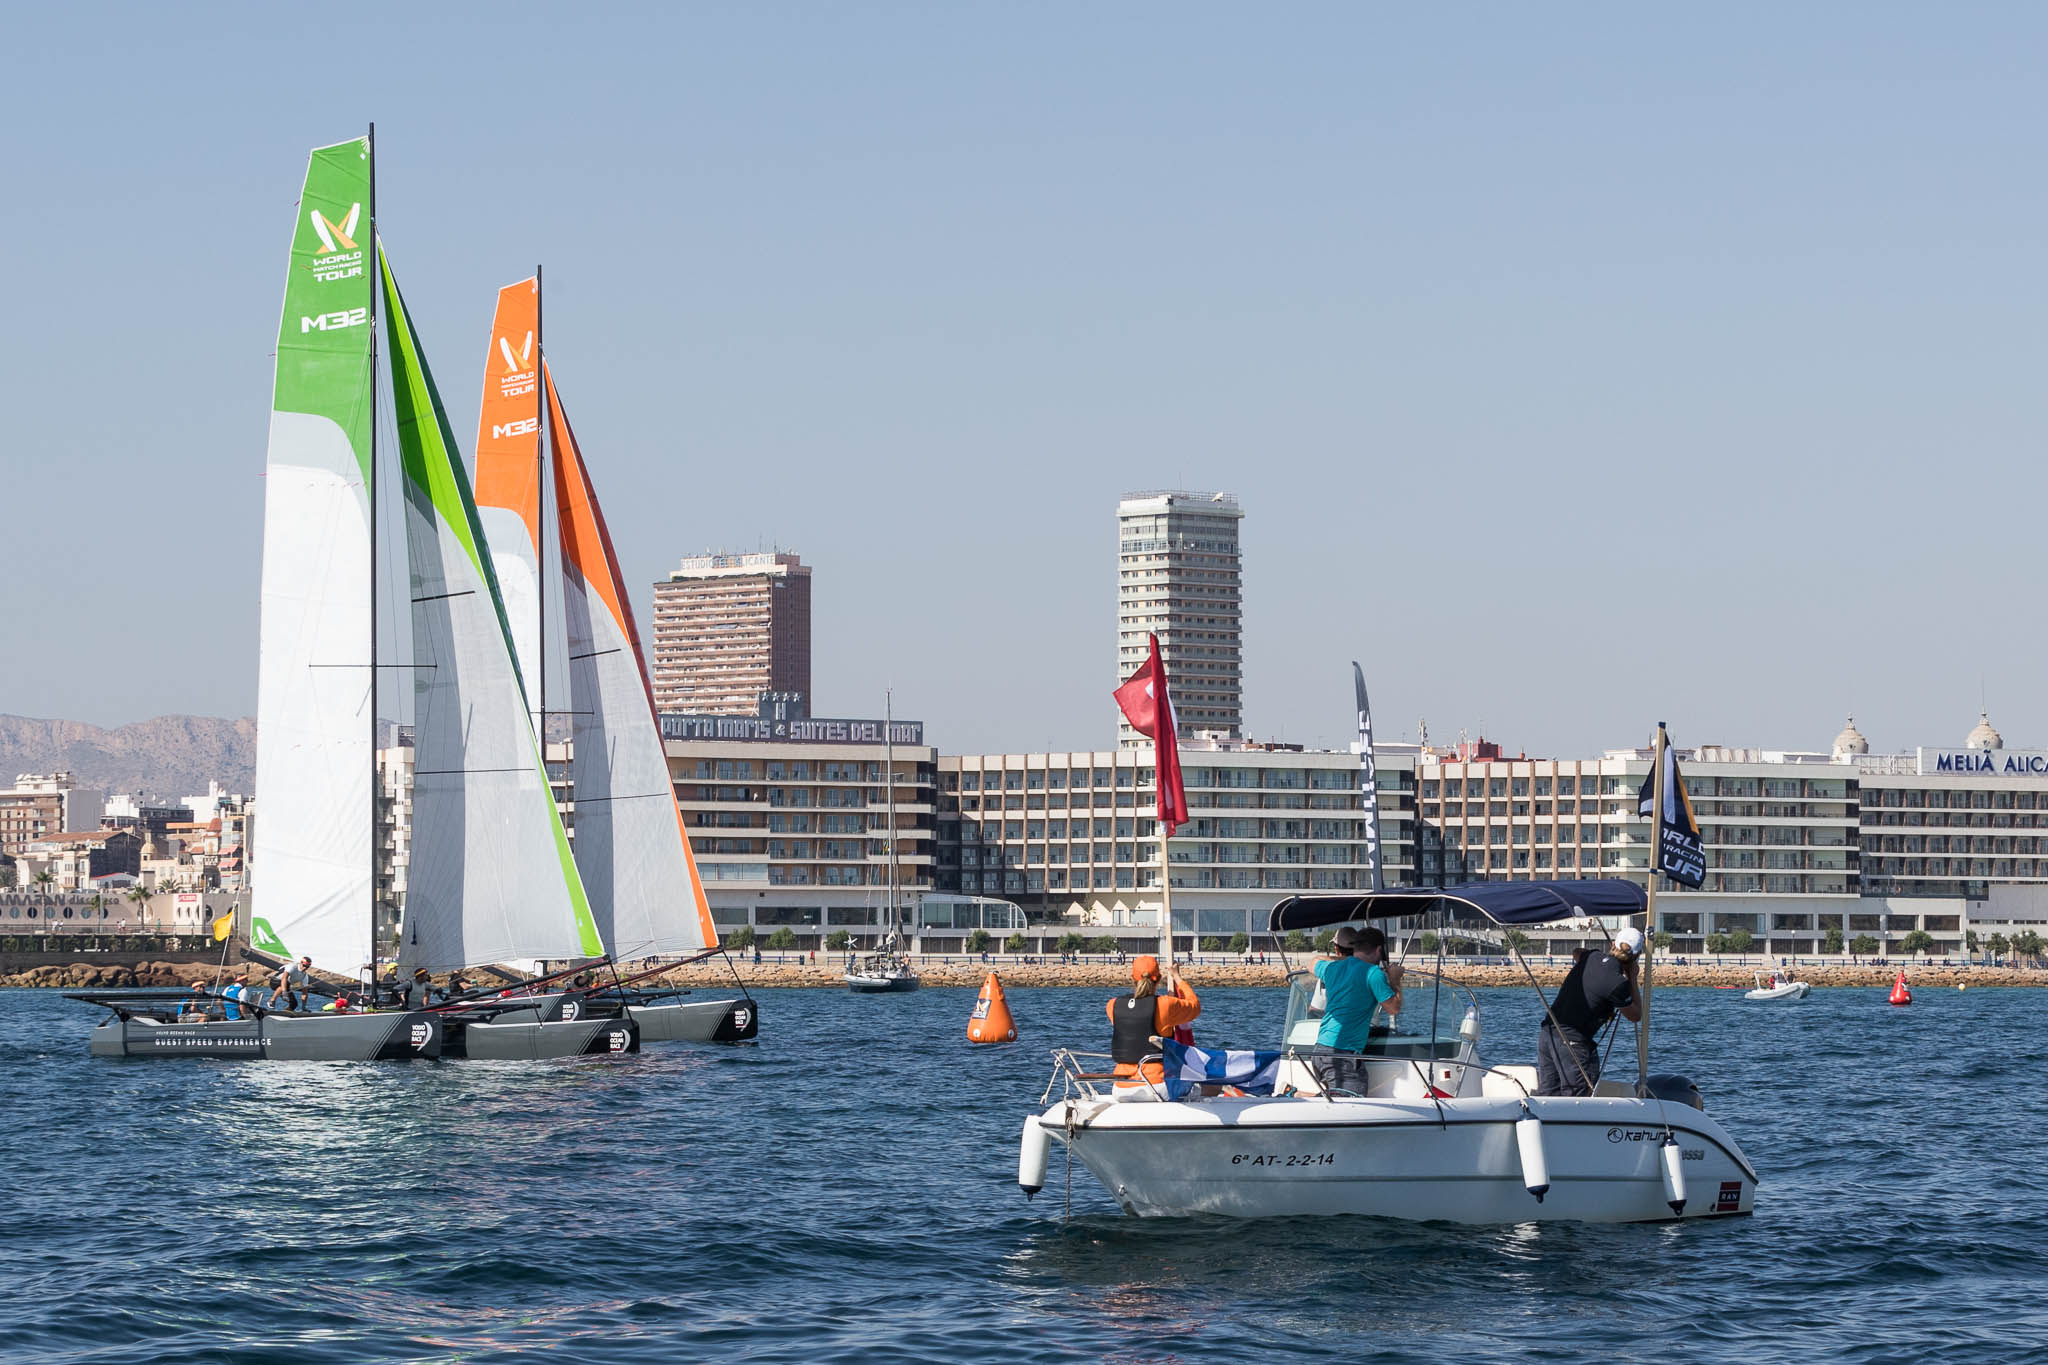 VOR alicante start quarter final